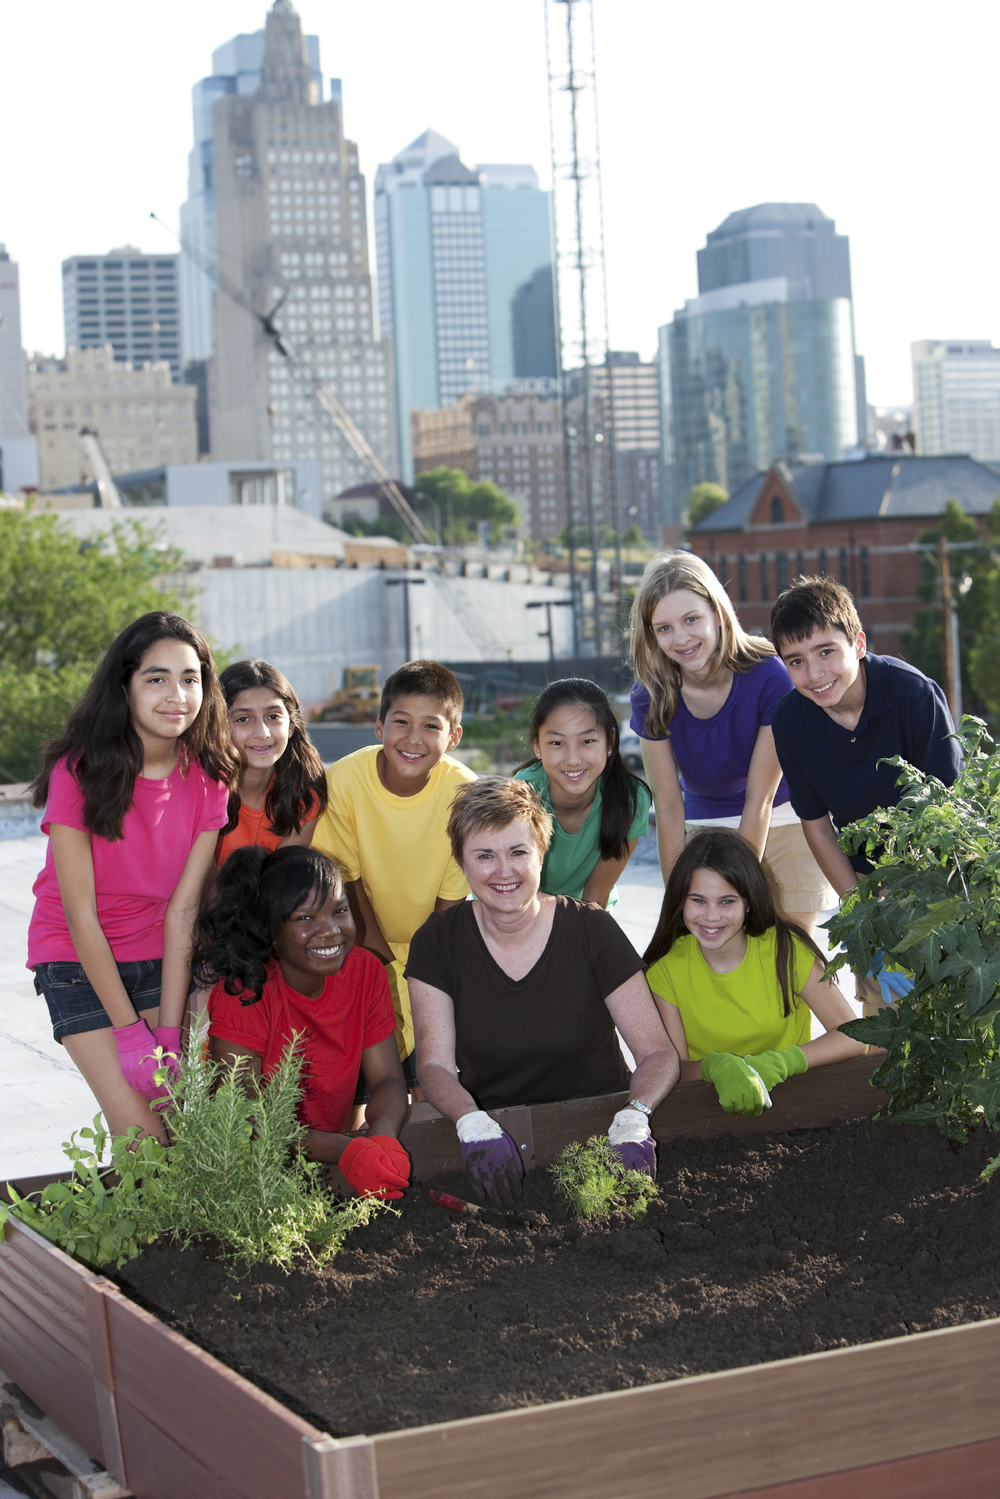 There are many ways to make a community healthier